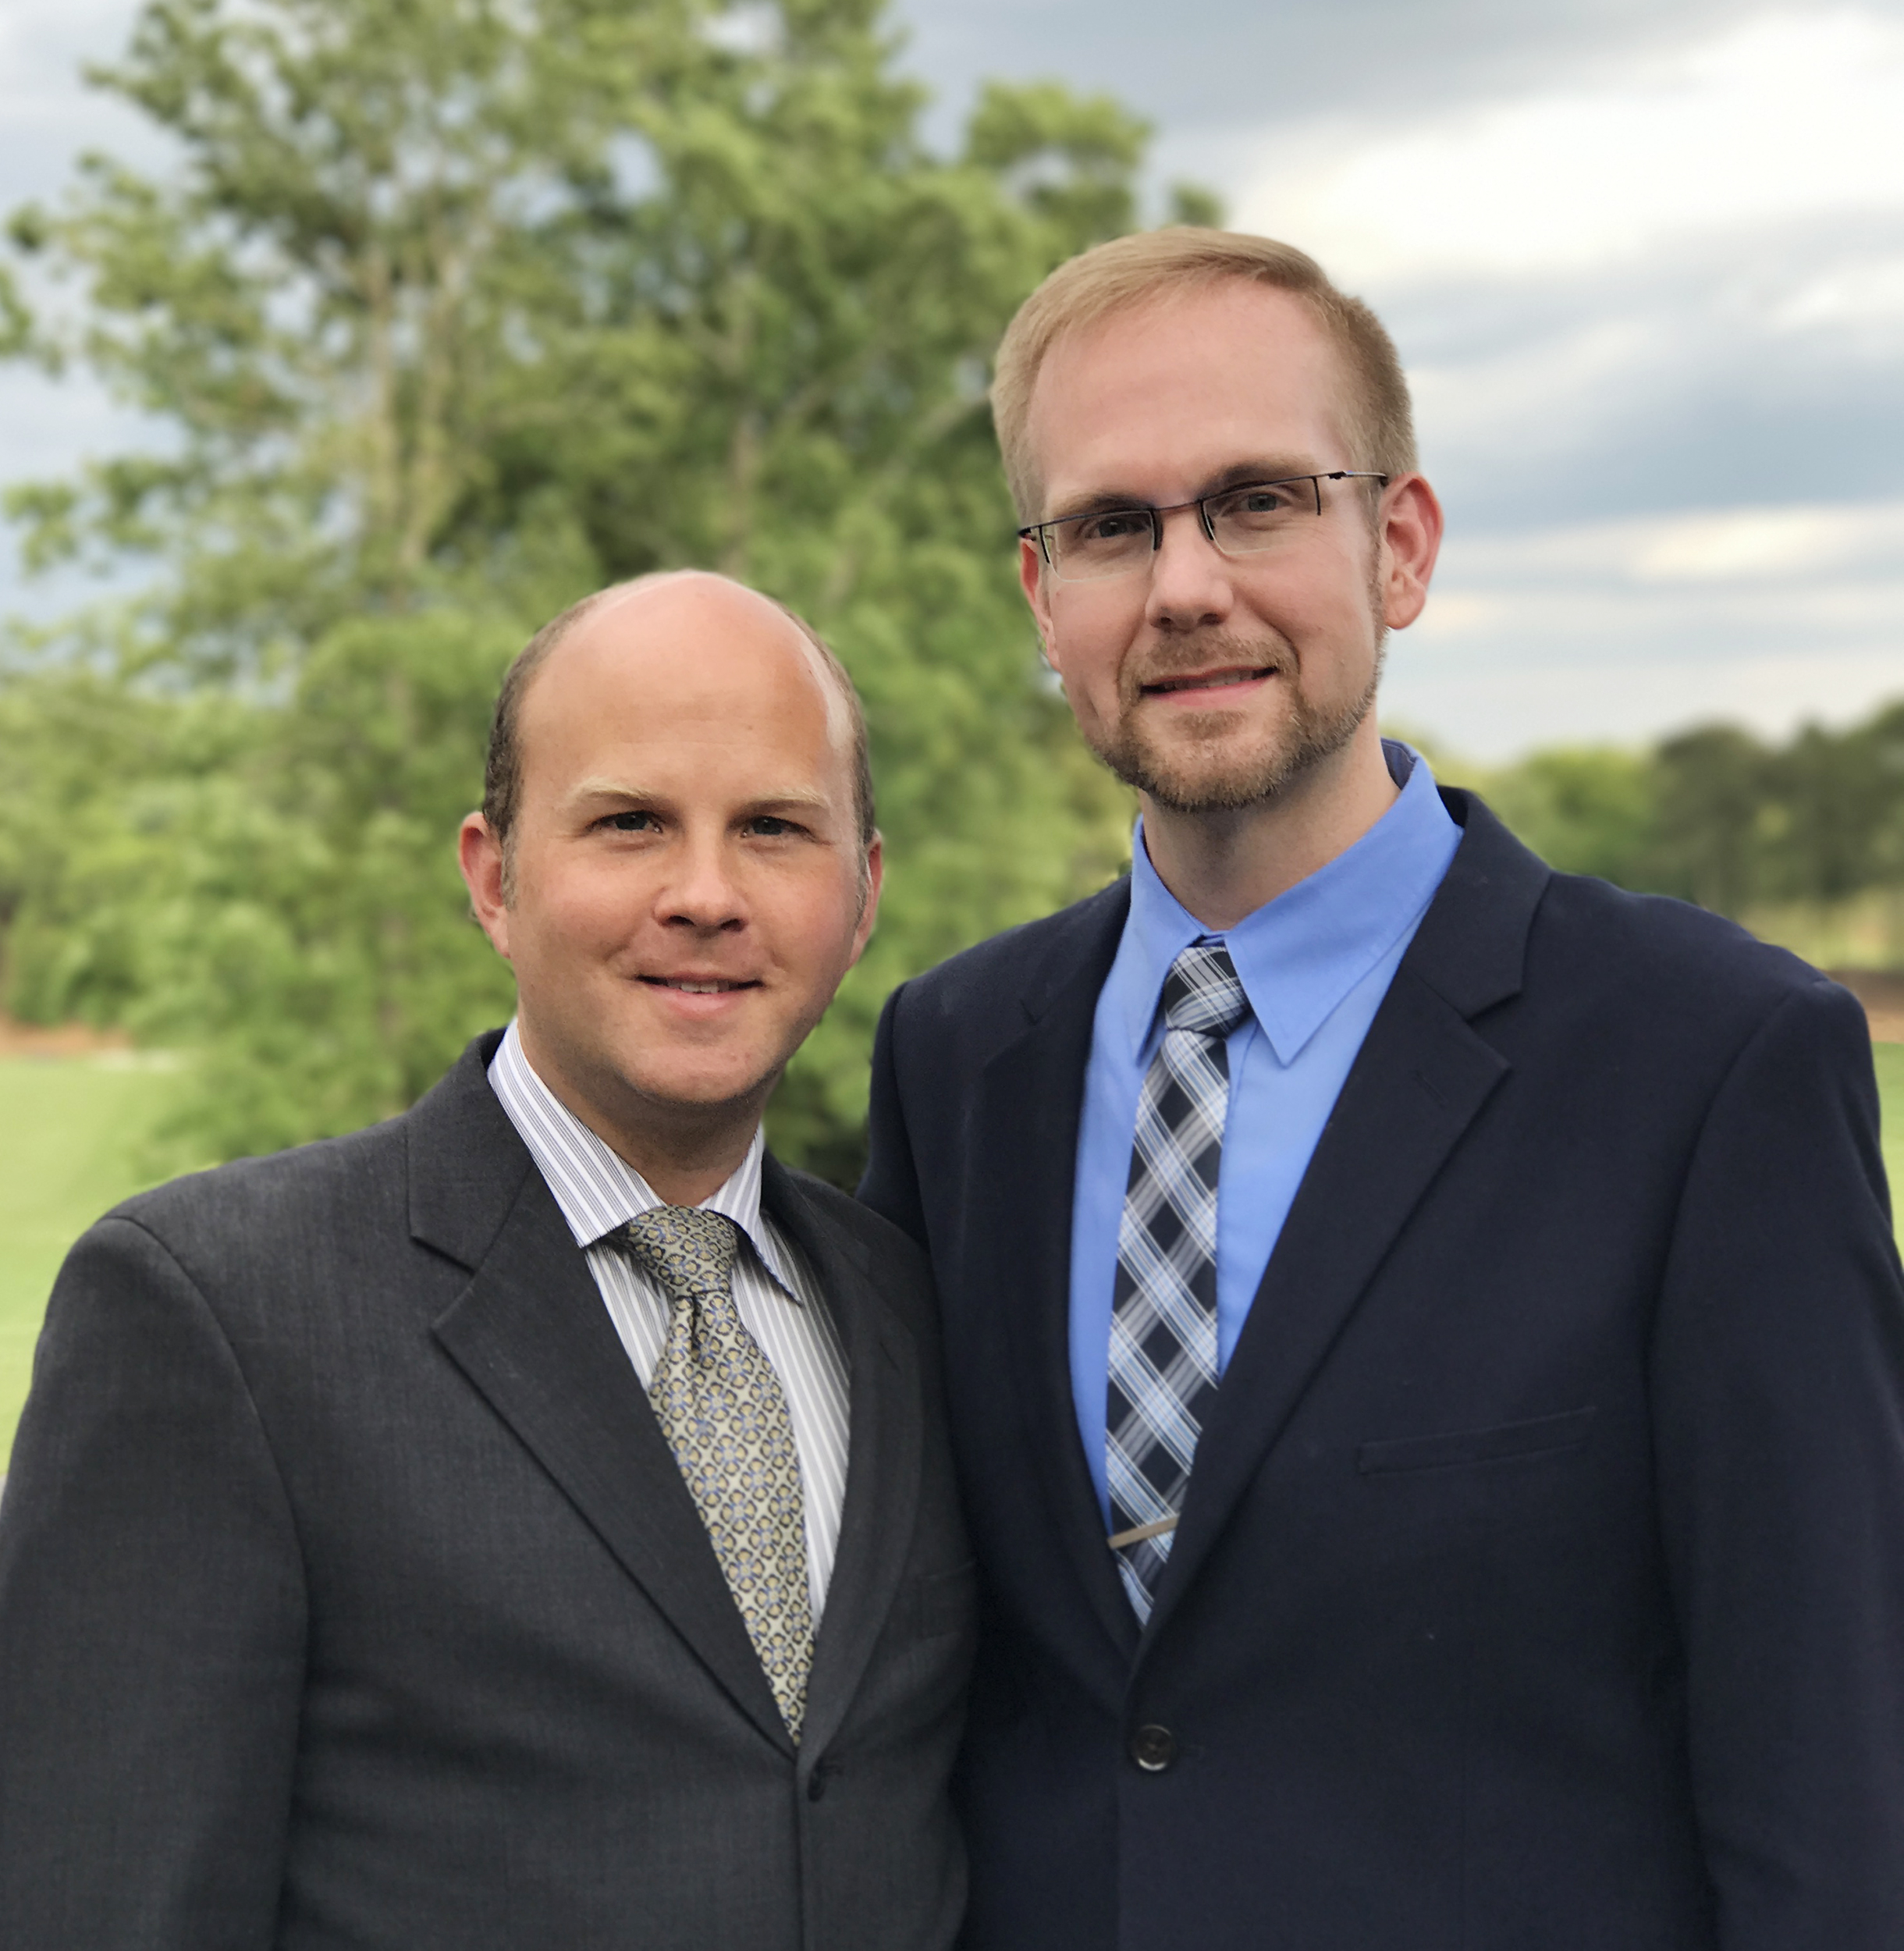 Indiana Court Dismisses Lawsuit from Homosexual Teacher Who Was Fired from Catholic High School for Being in Same-Sex Marriage